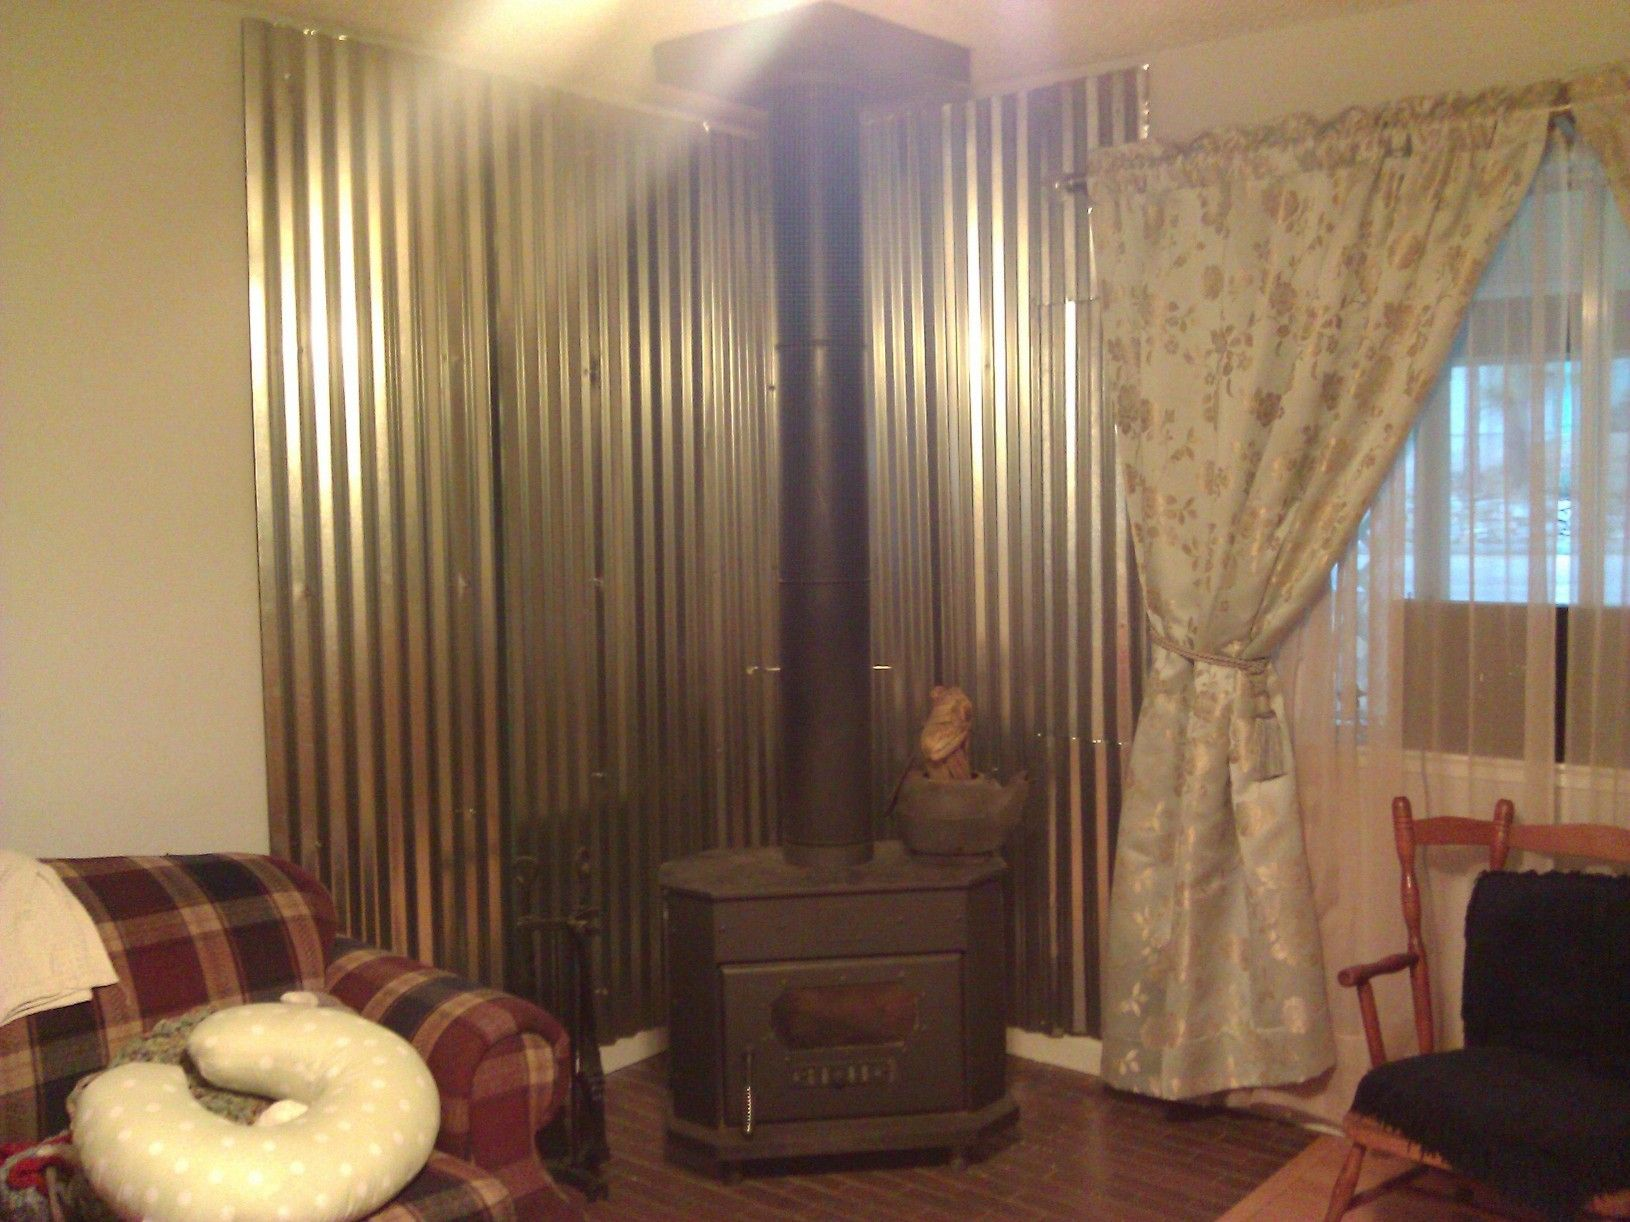 Out Diy Wood Stove Heat Shield Very Rustic And Works Like A Charm Not To Replace The Curtains Wood Stove Heat Shield Wood Heater Wood Stove Wall